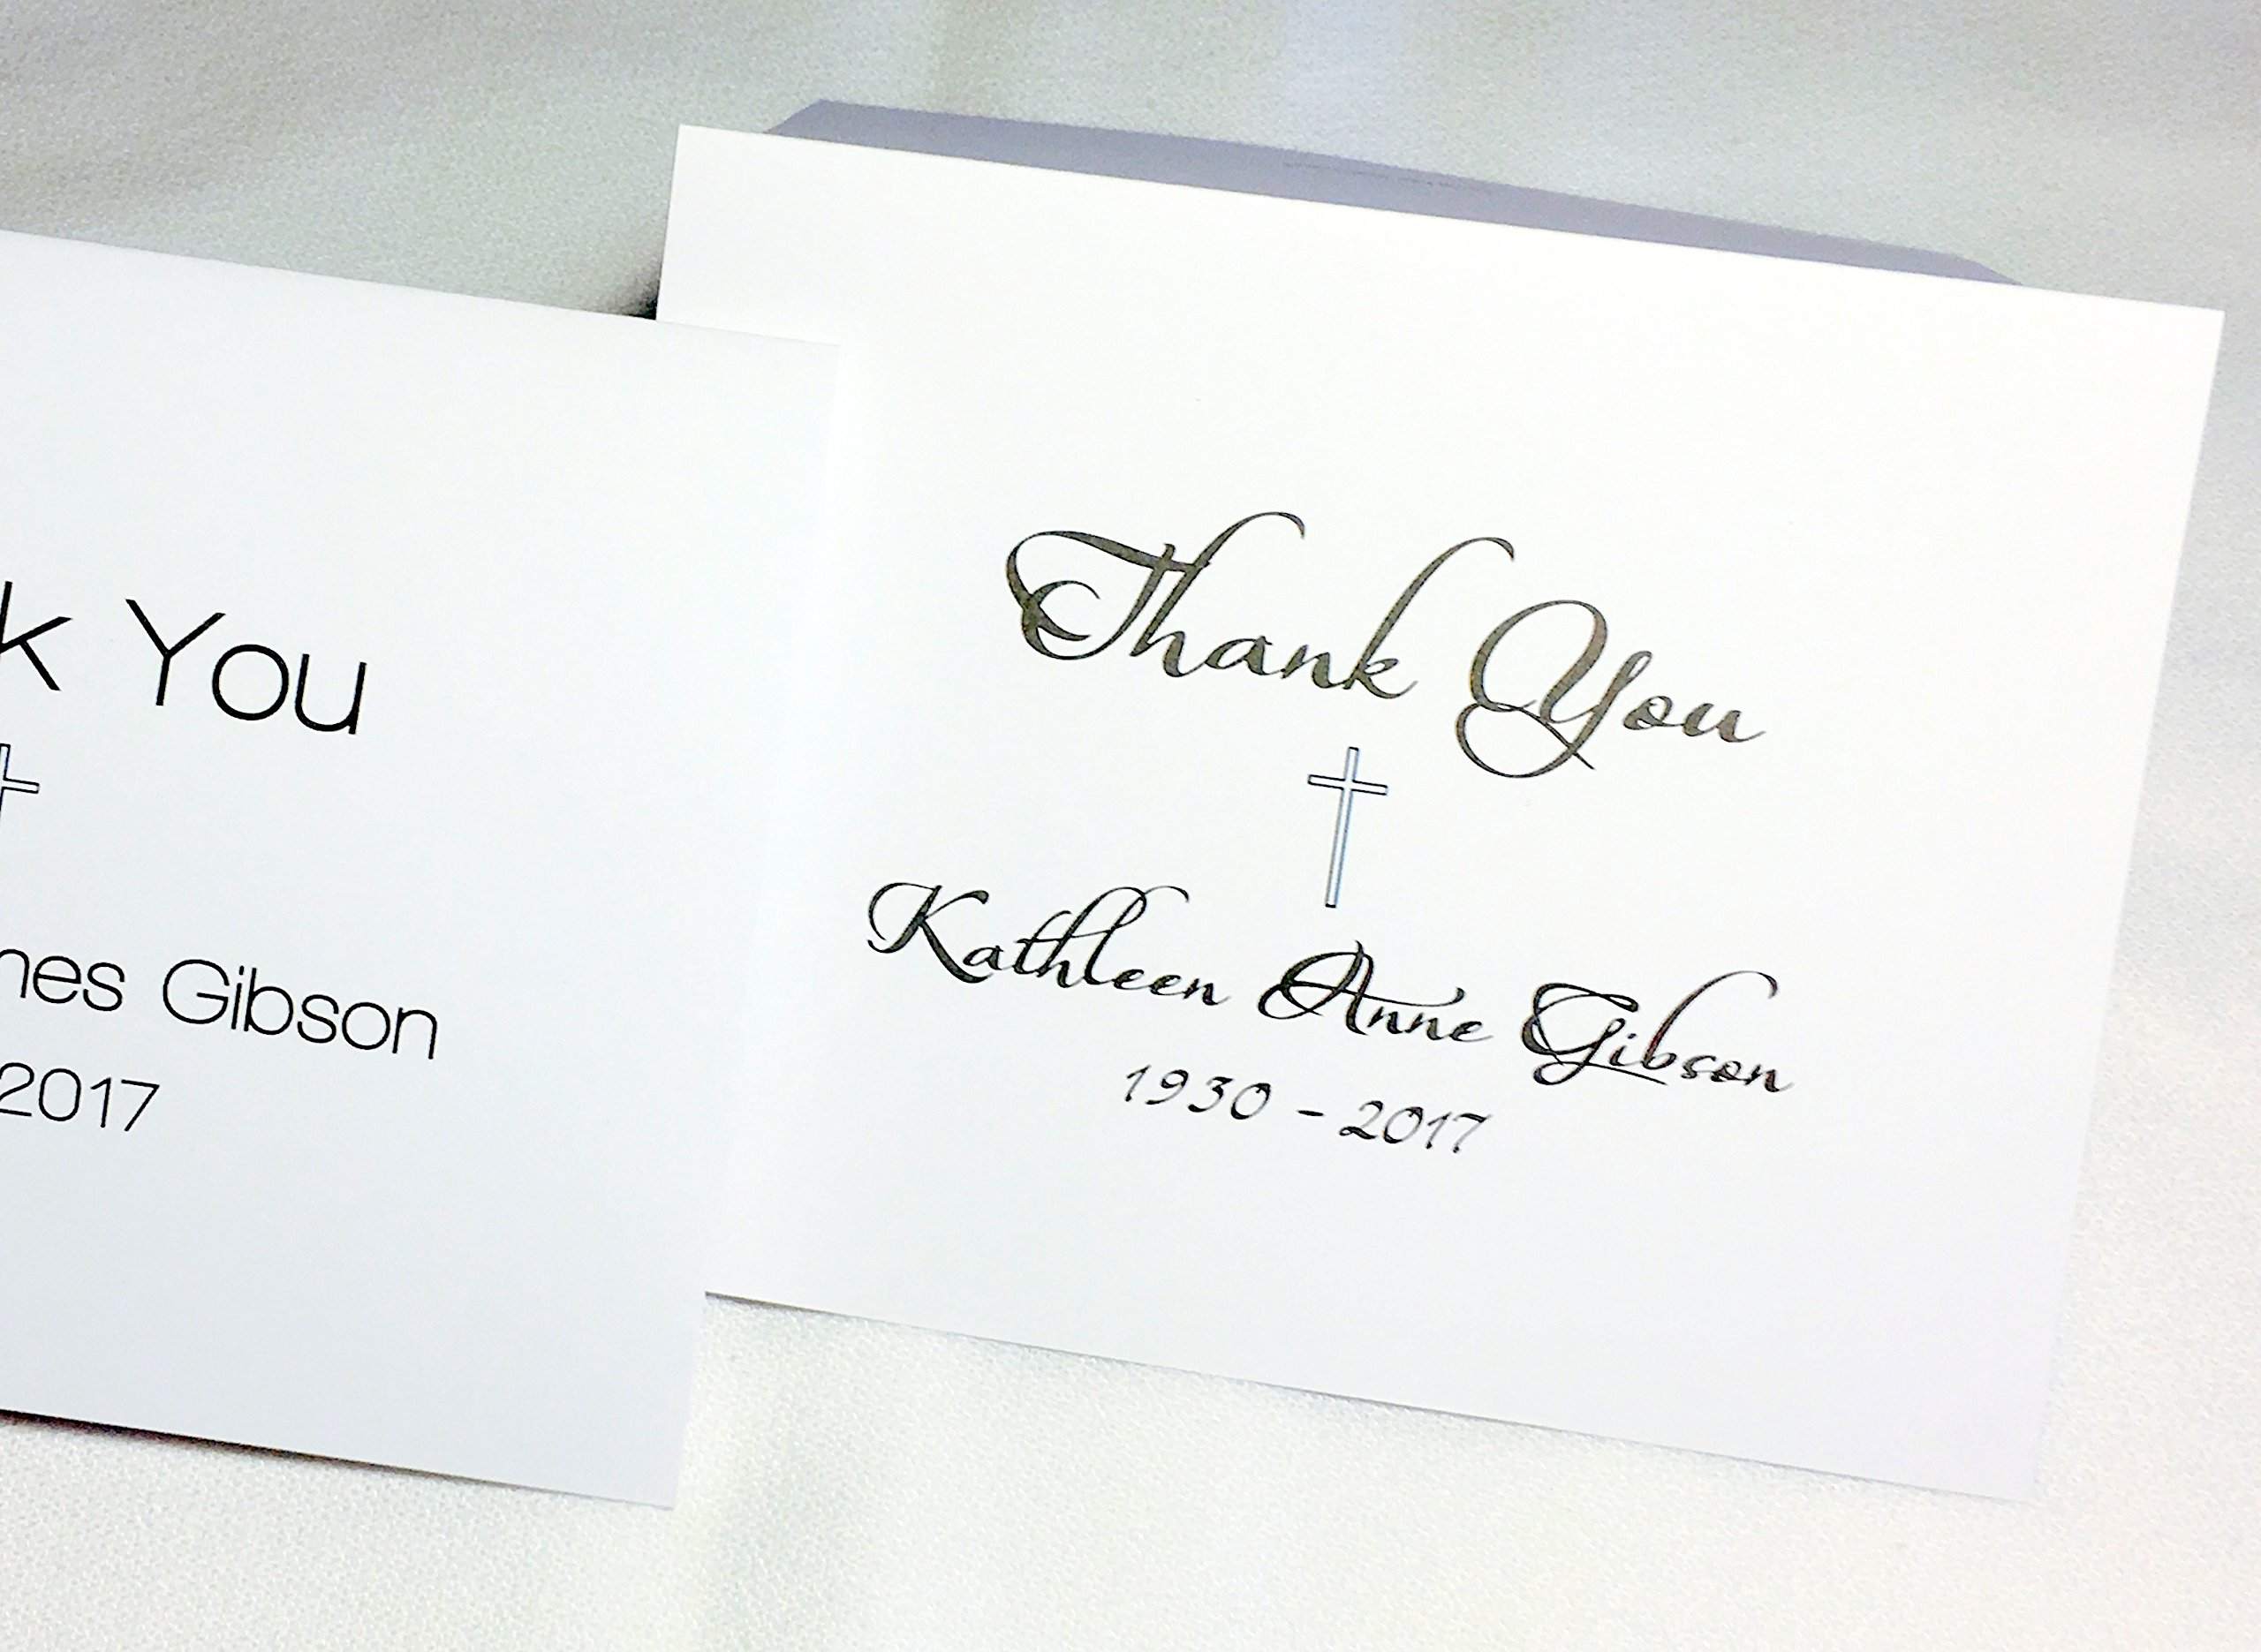 Personalized Note Cards with Name or Initials. Funeral Thank You Notes, Memory Cards, Sympathy Cards. Choose Set of 20 or 50 Plus Matching Envelopes. Blank Inside (20 Pack Script Font)